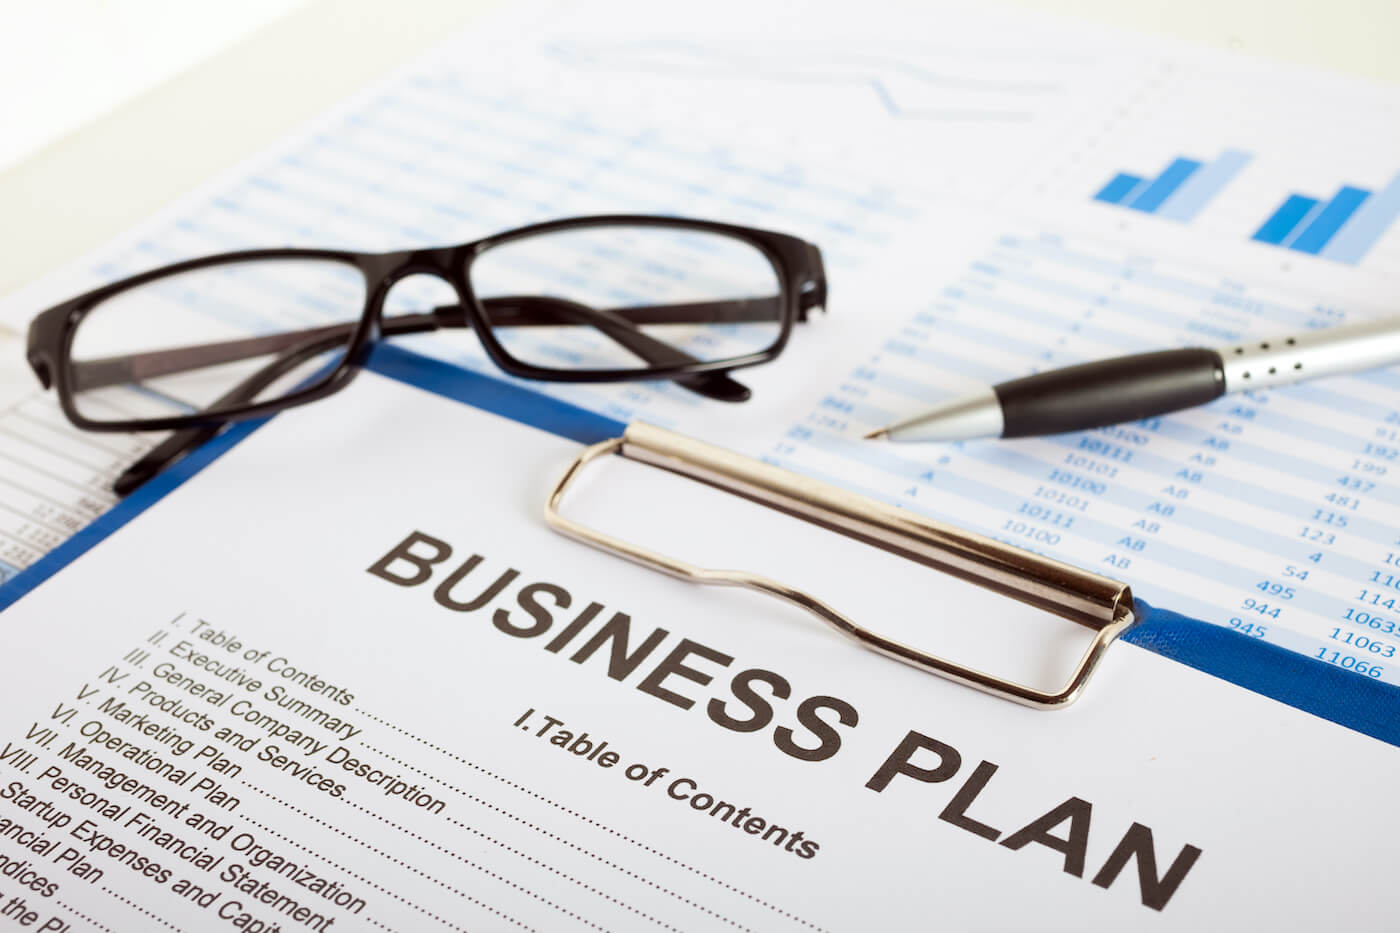 Creare un business plan